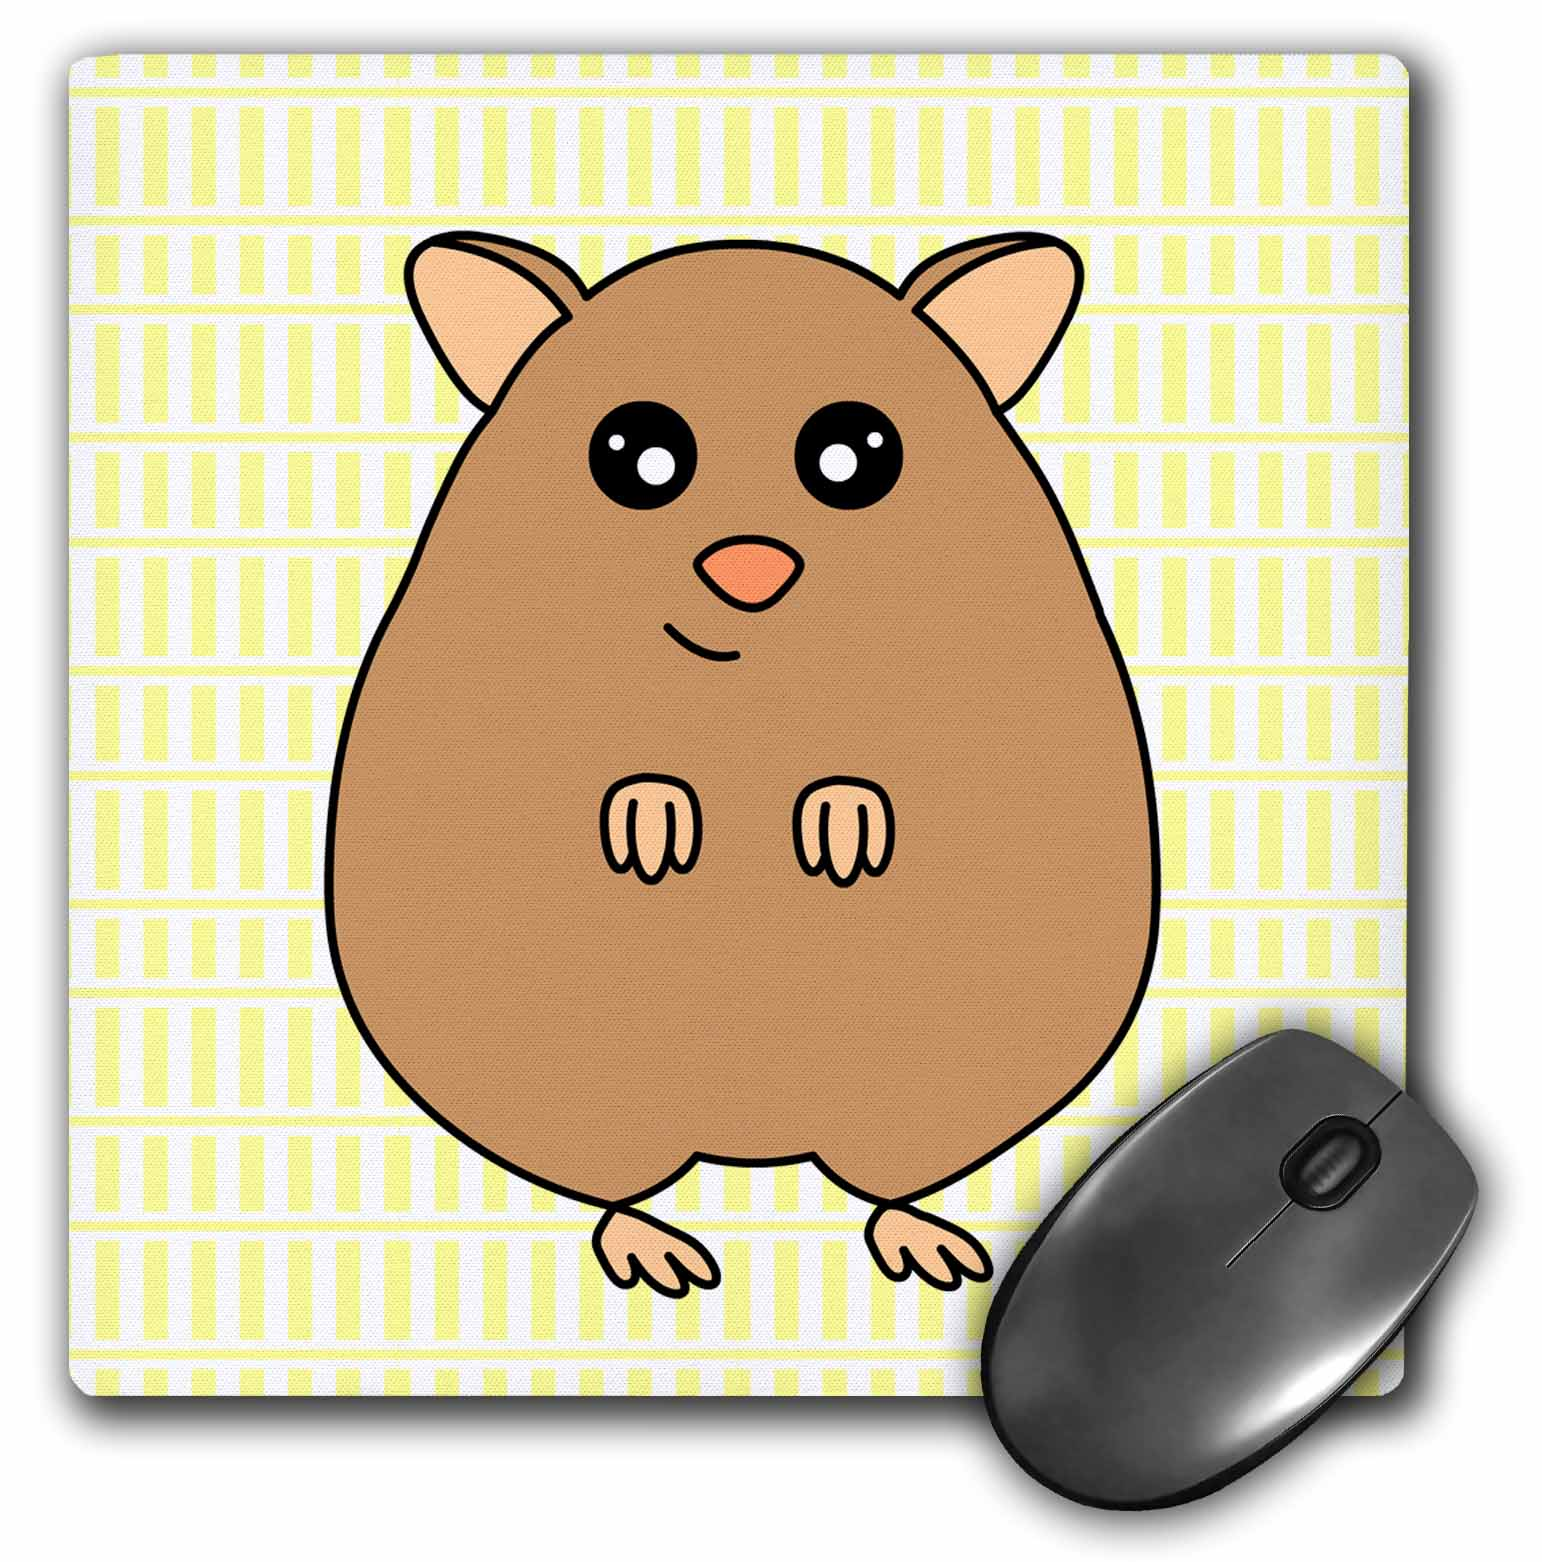 3dRose Cute Brown Hamster, Mouse Pad, 8 by 8 inches